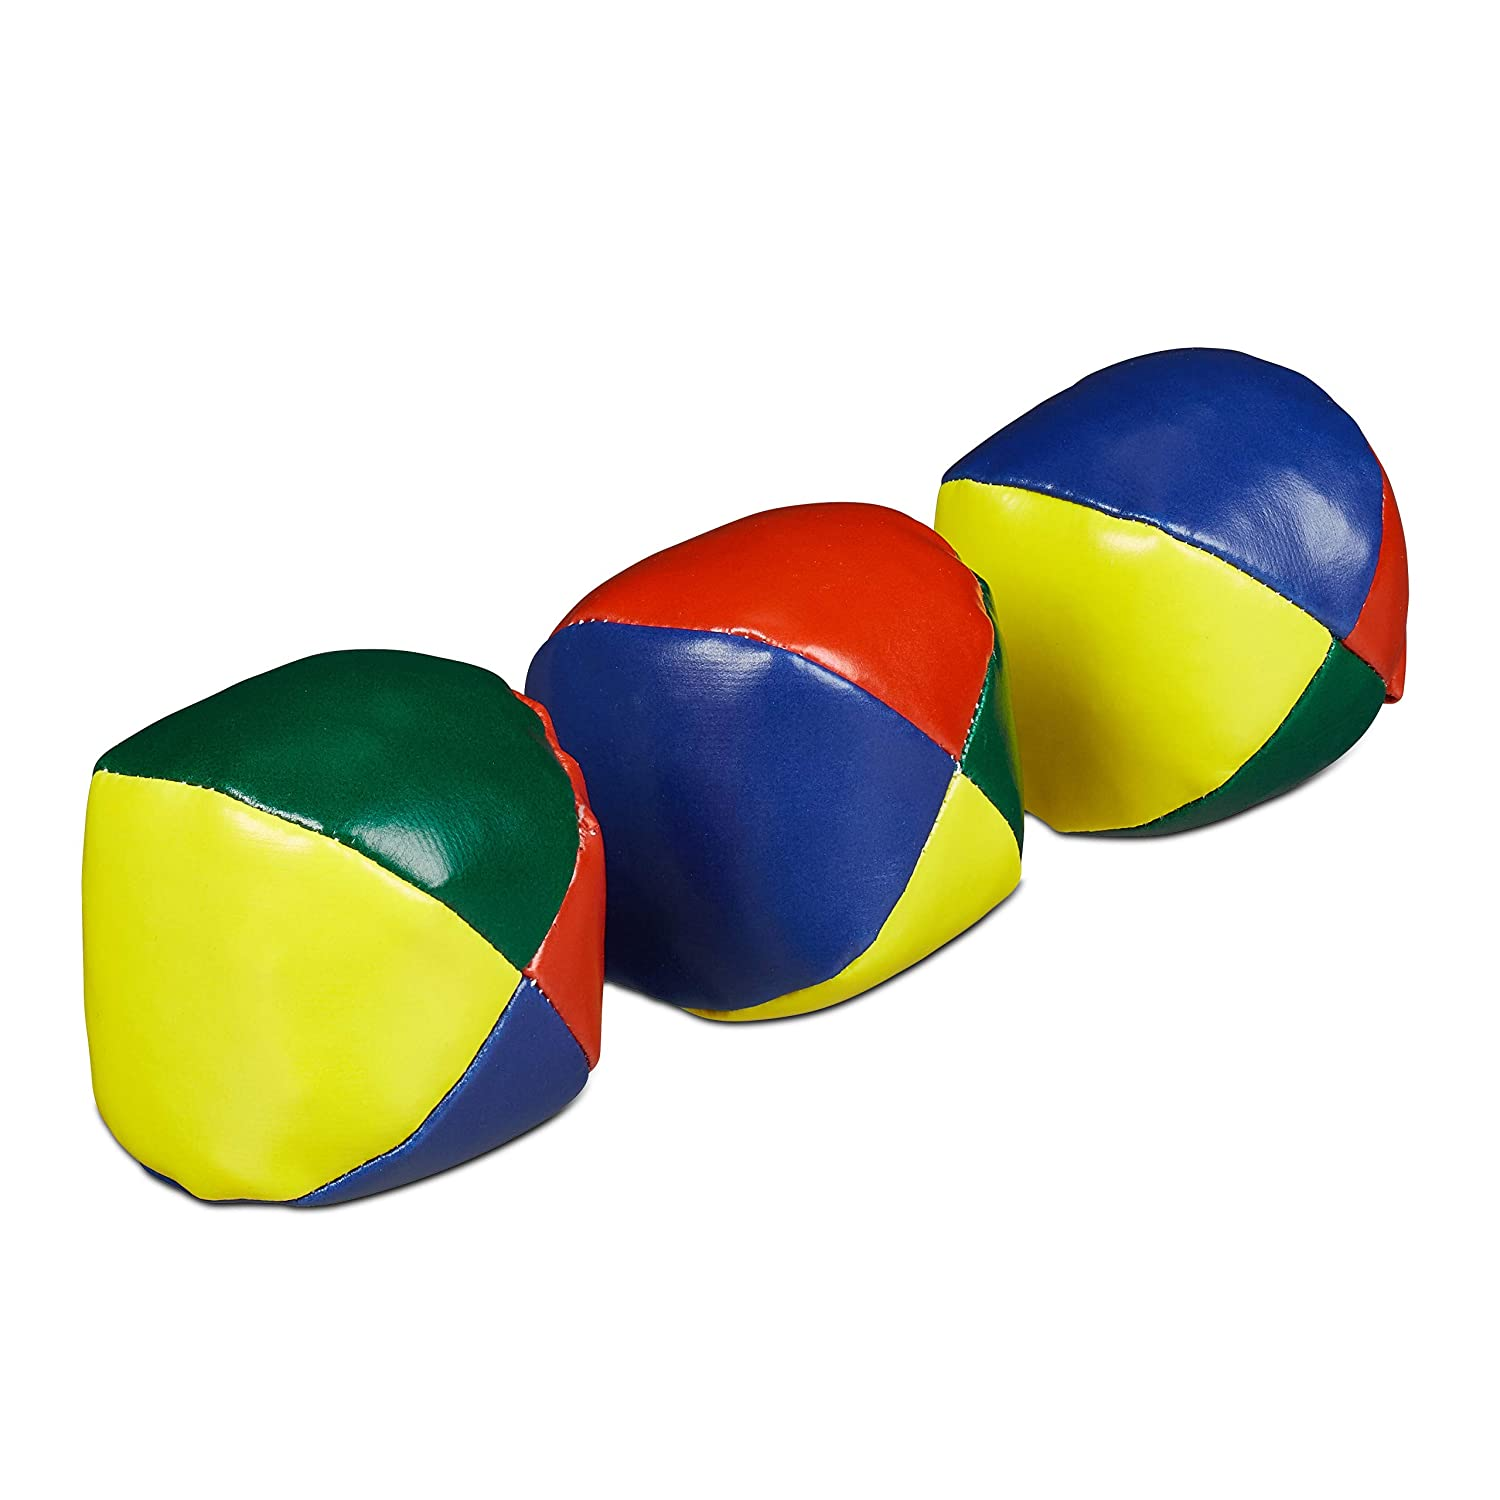 Relaxdays Lot de 3 balles de jonglage pour Adulte Unisexe - Adulte - Jongling Balls Souple - Enfant & Adulte - Jongle - Ø 6 cm - Multicolore